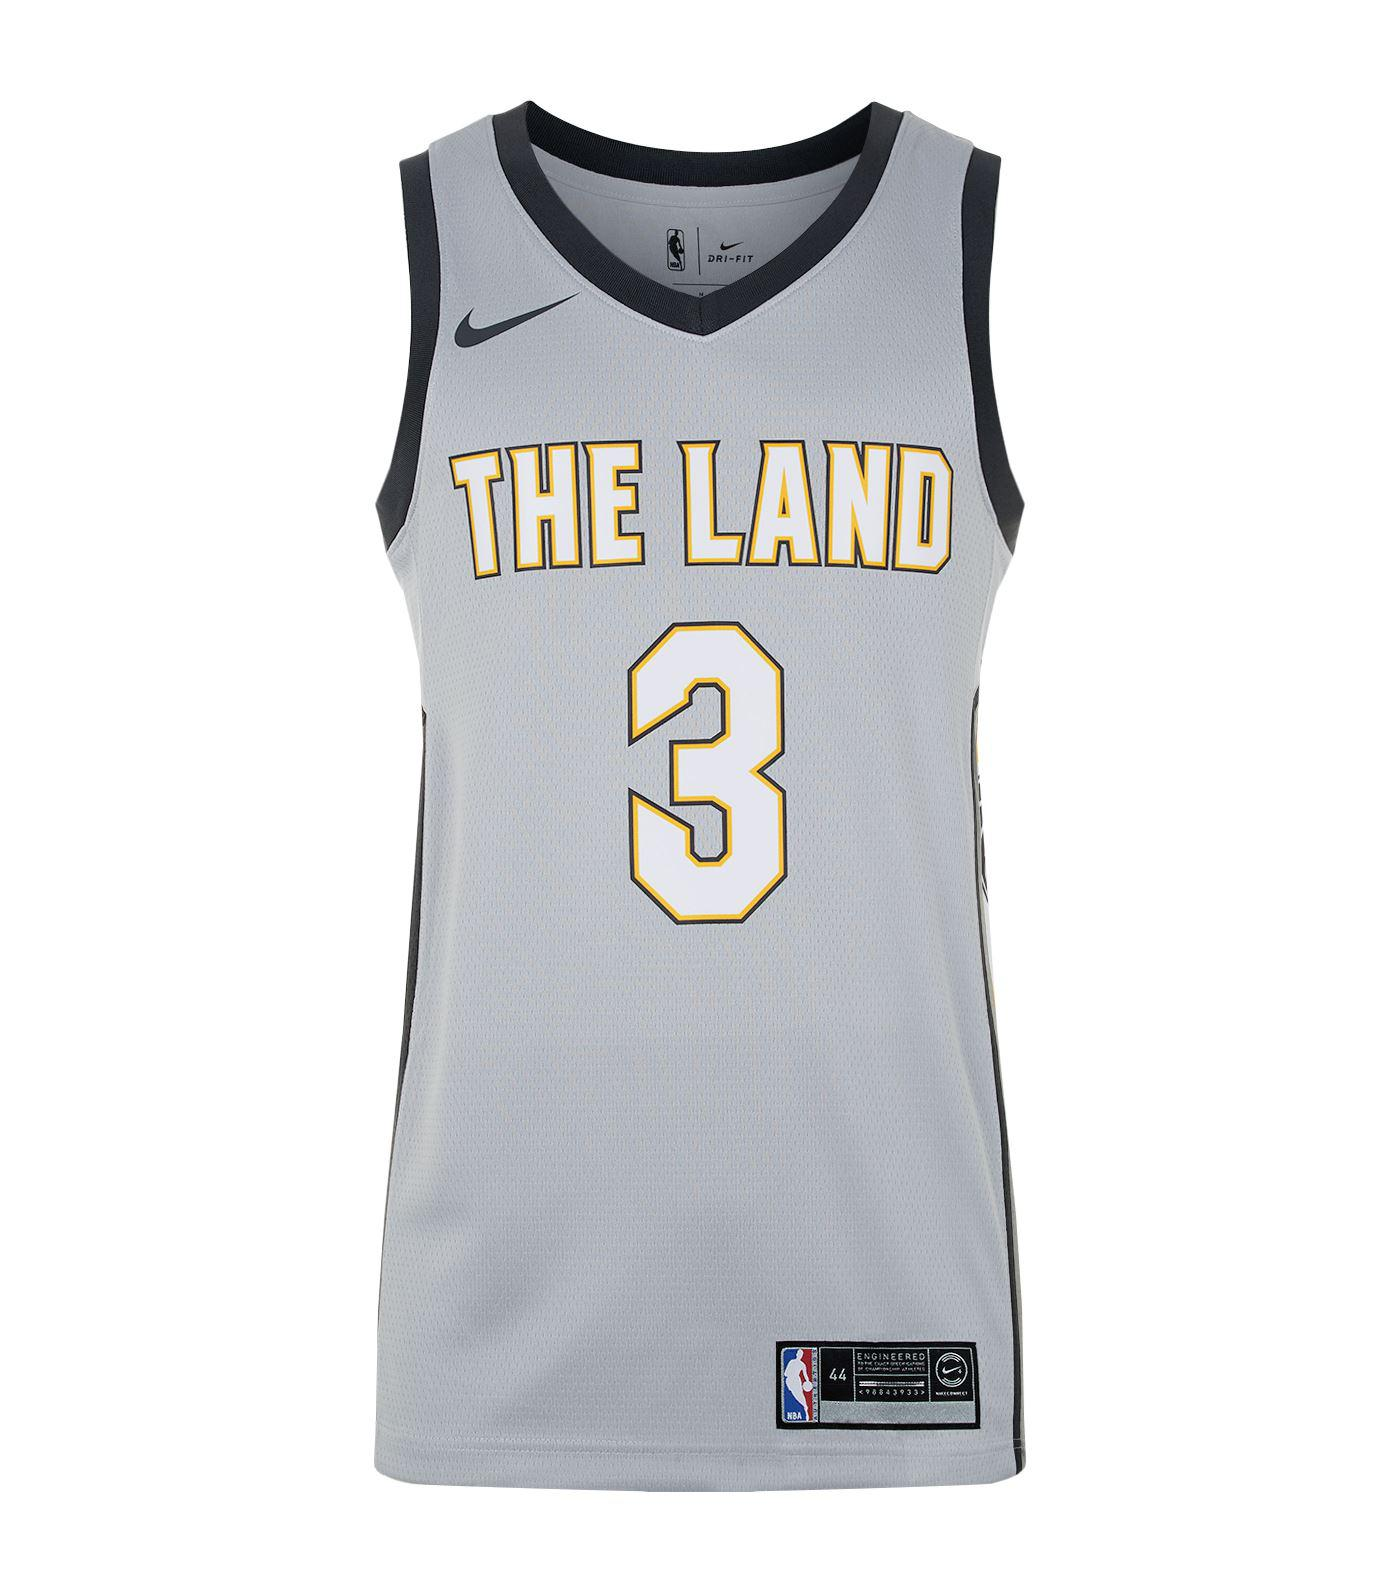 9d50e2a22f46 ... norway lyst nike isaiah thomas cleveland cavaliers basketball jersey in  bb453 7325d